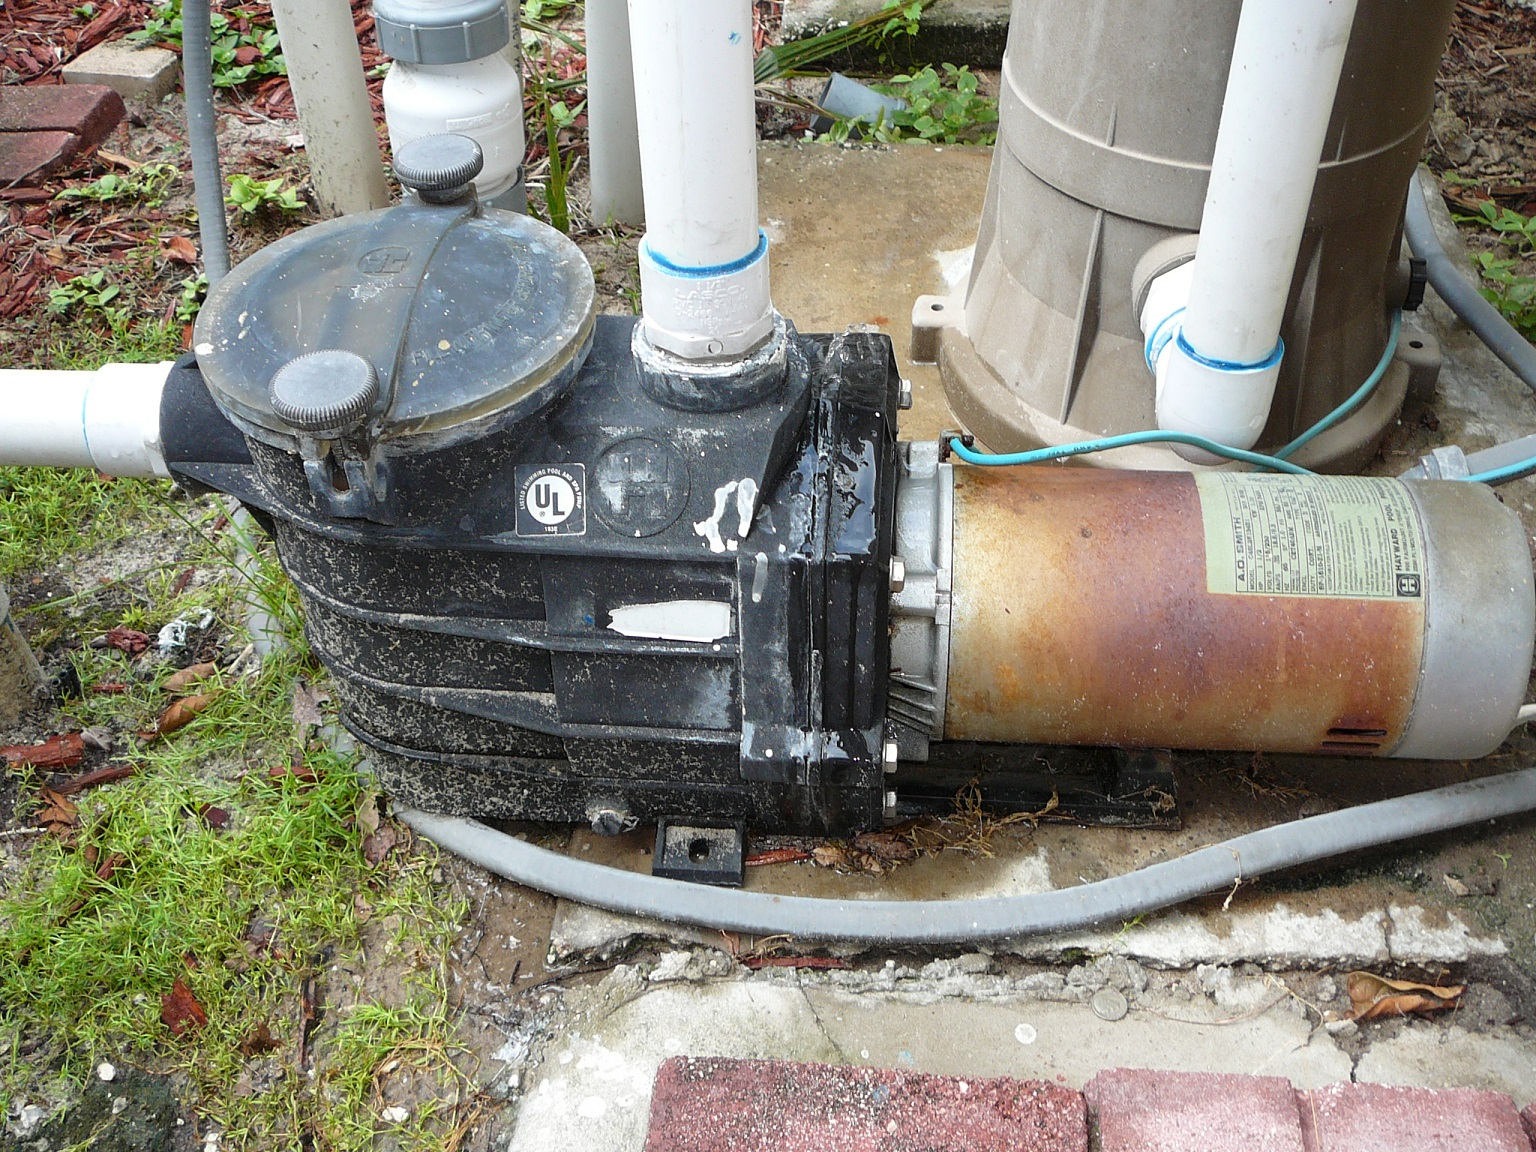 n p1050381m 3?format=jpg&scale=both&mode=pad&anchor=middlecenter&width=360&height=270 how to troubleshoot a pool pump motor motor overheated  at readyjetset.co